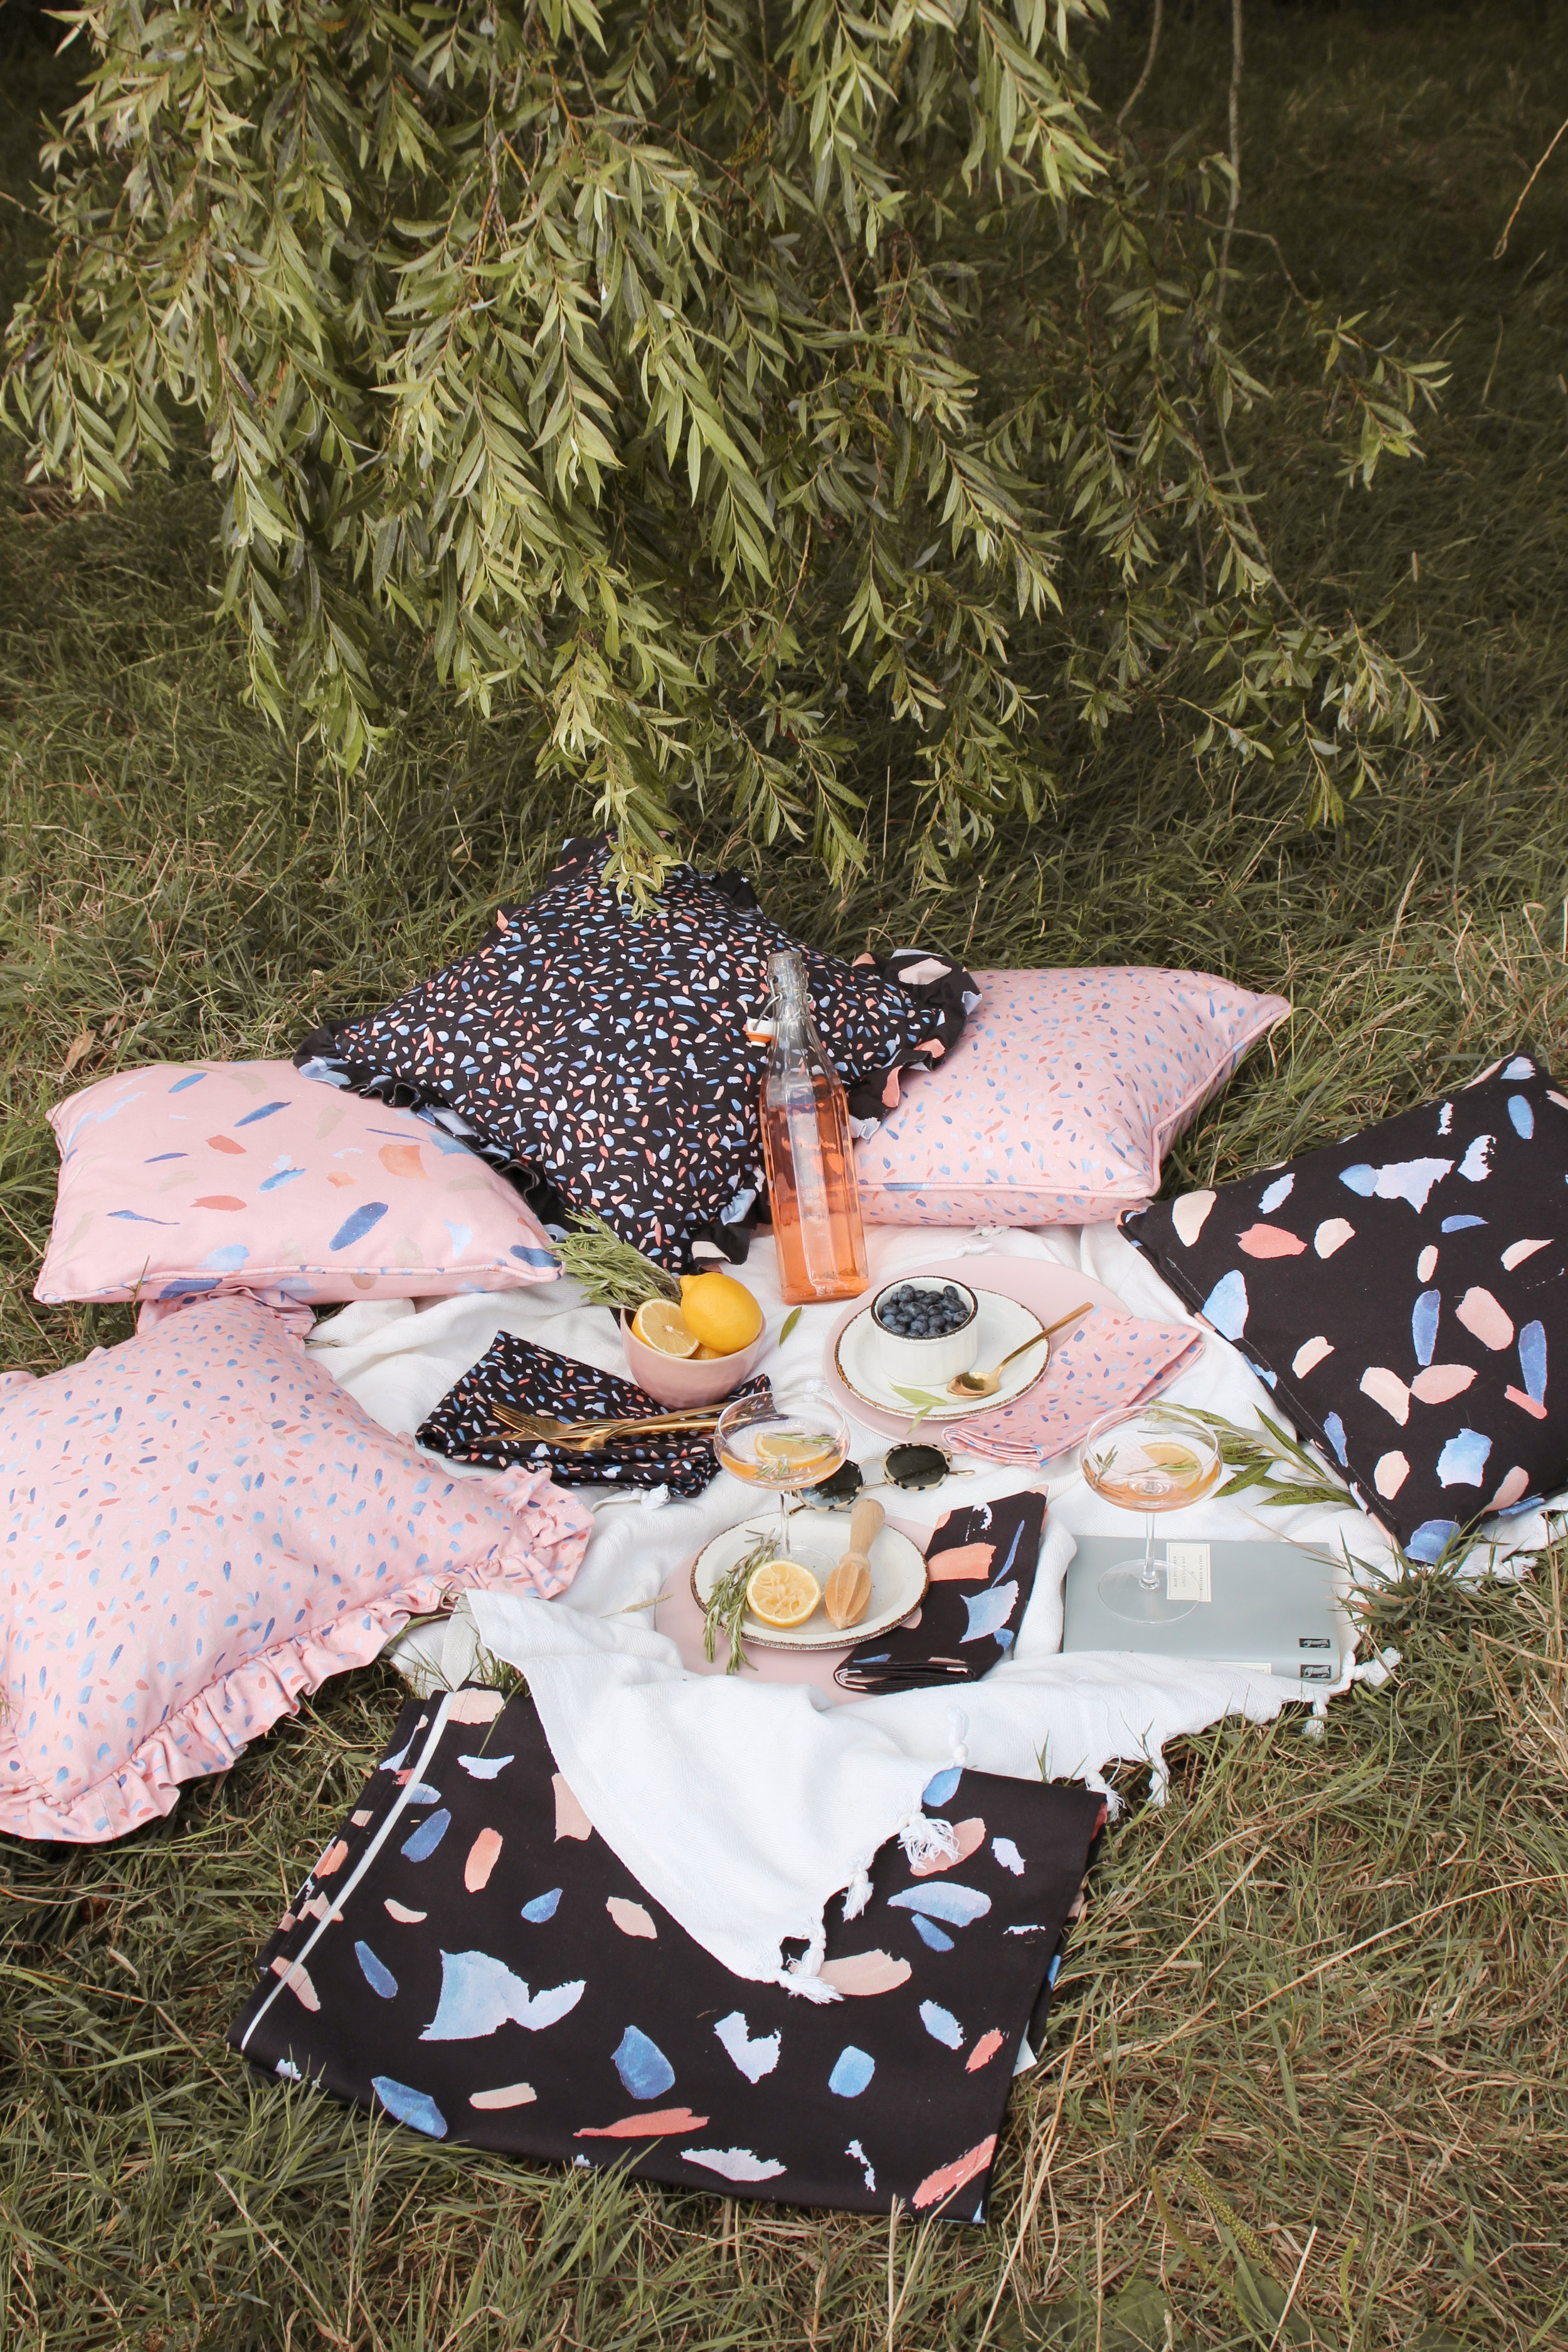 The perfect summer picnic style inspiration with House Anna cushions and table linens